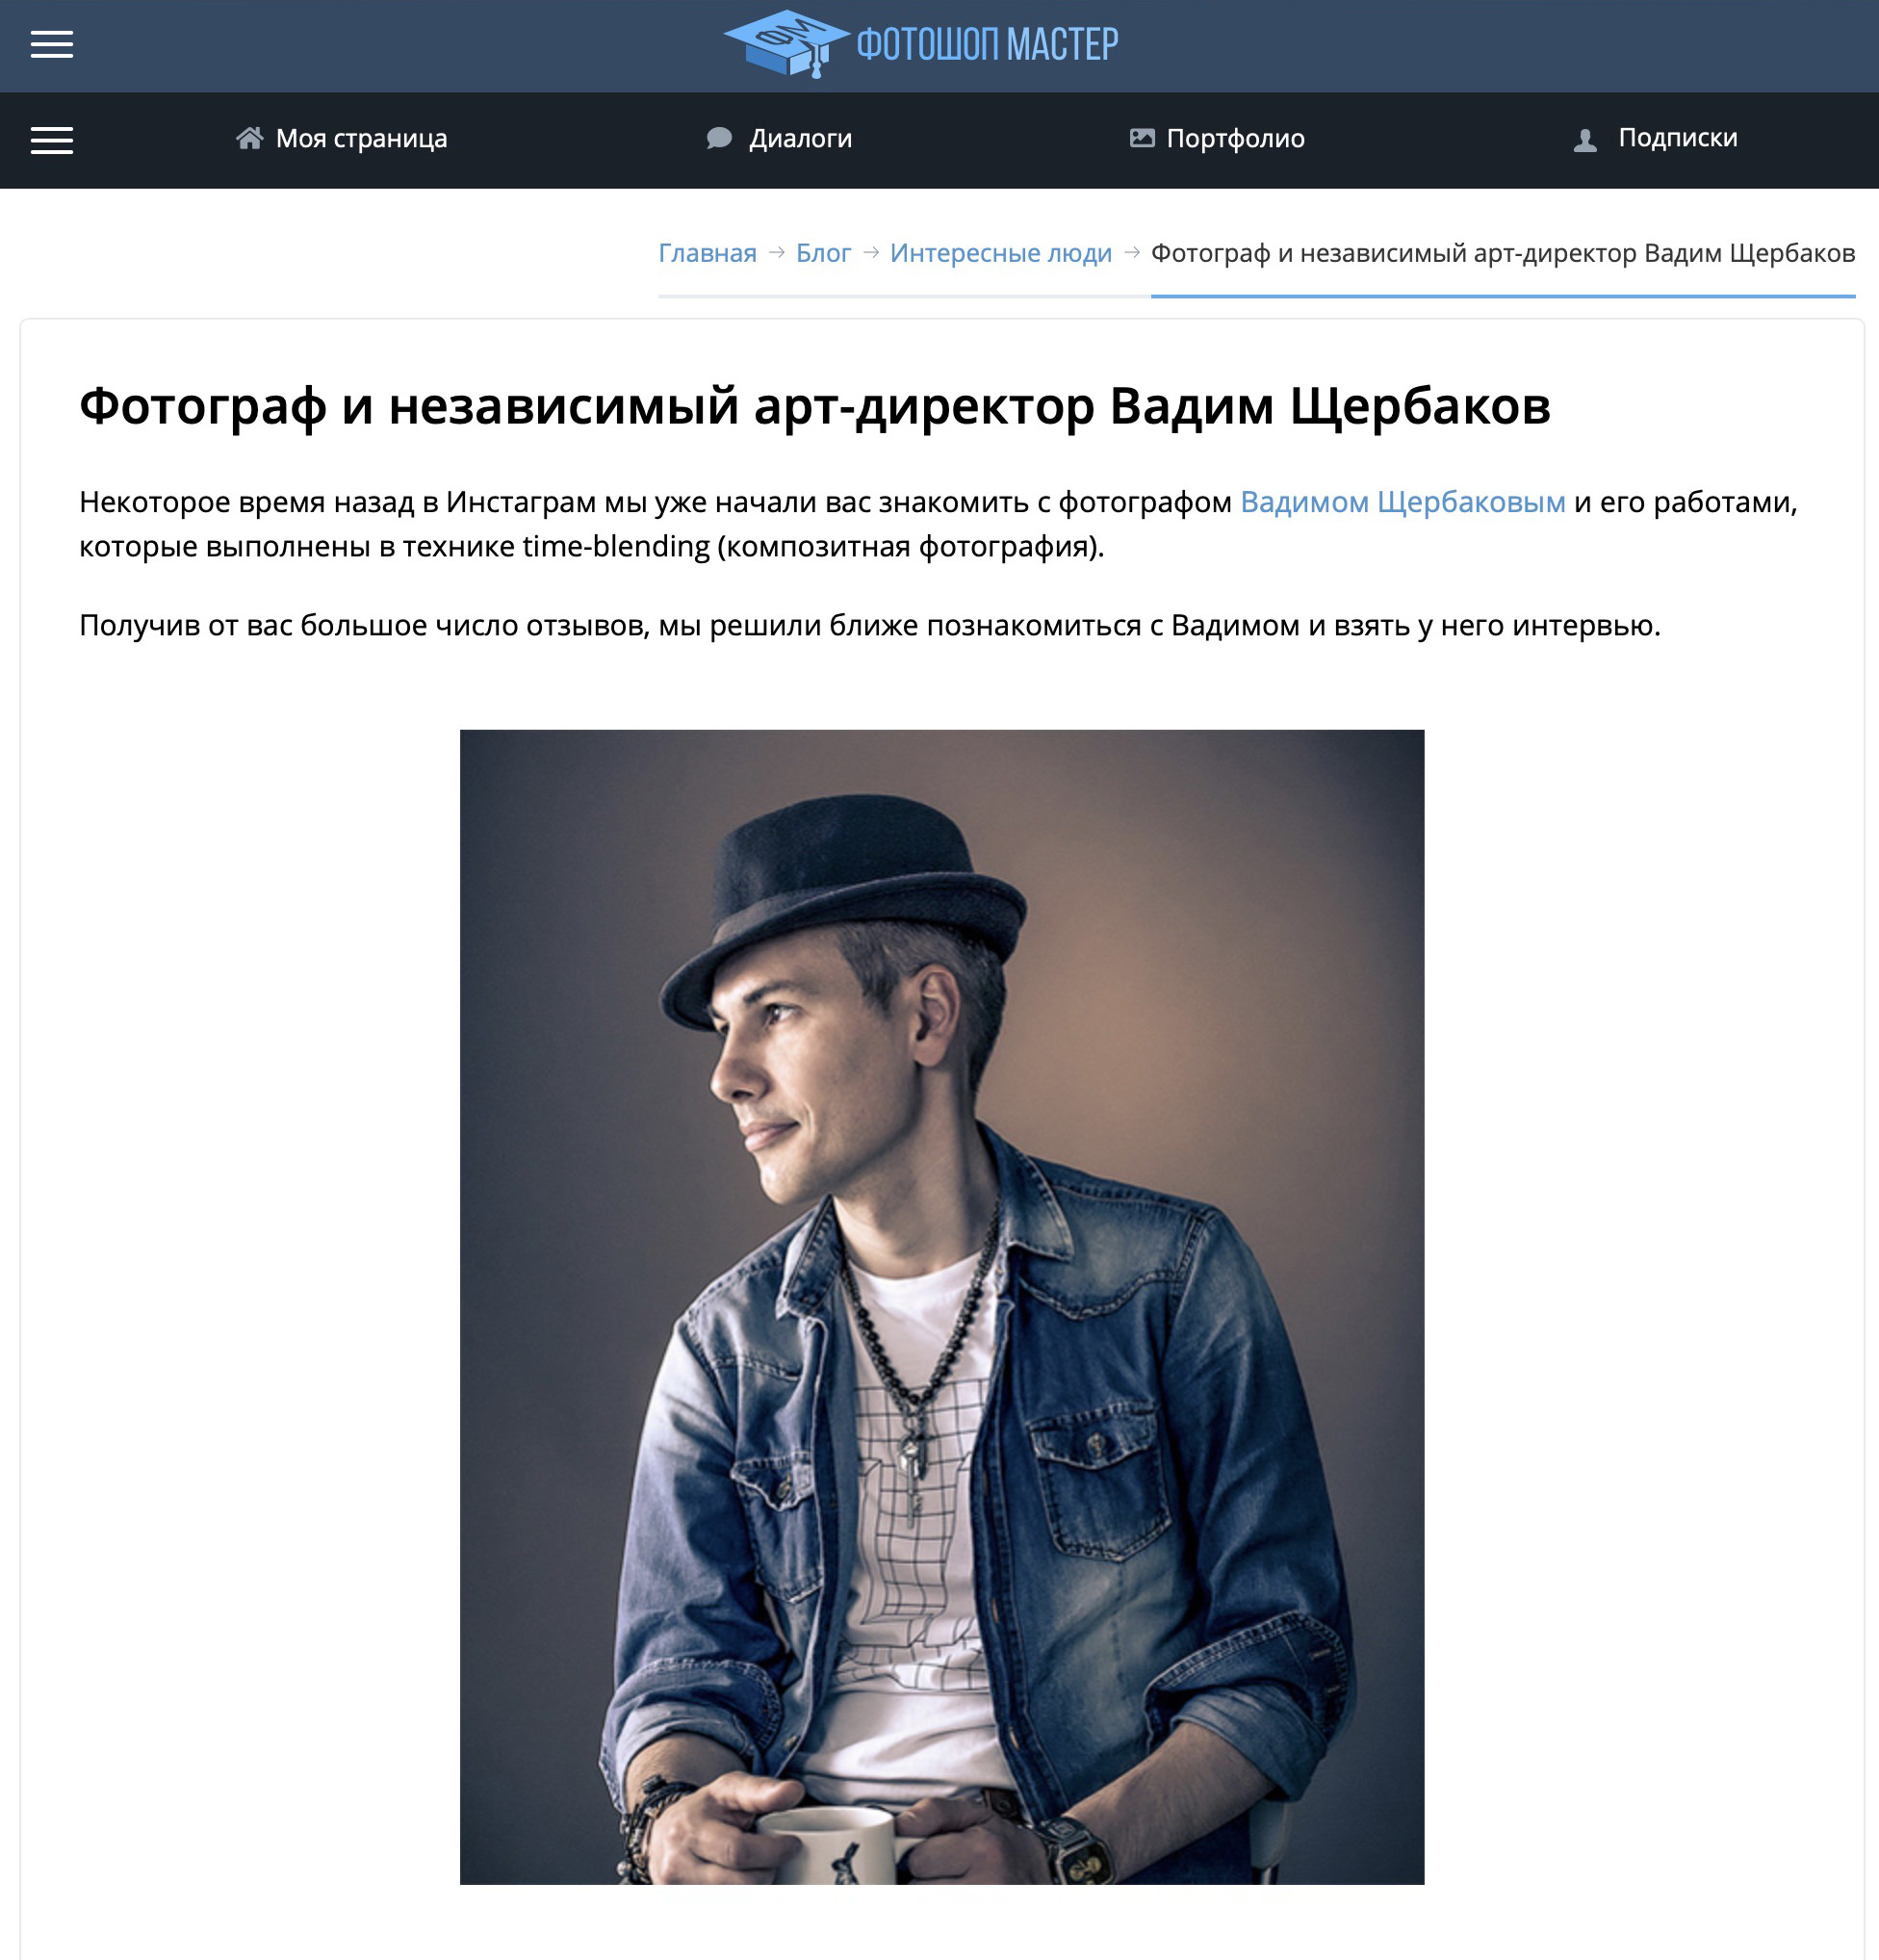 Russian educational website Photoshop Masters - Interview